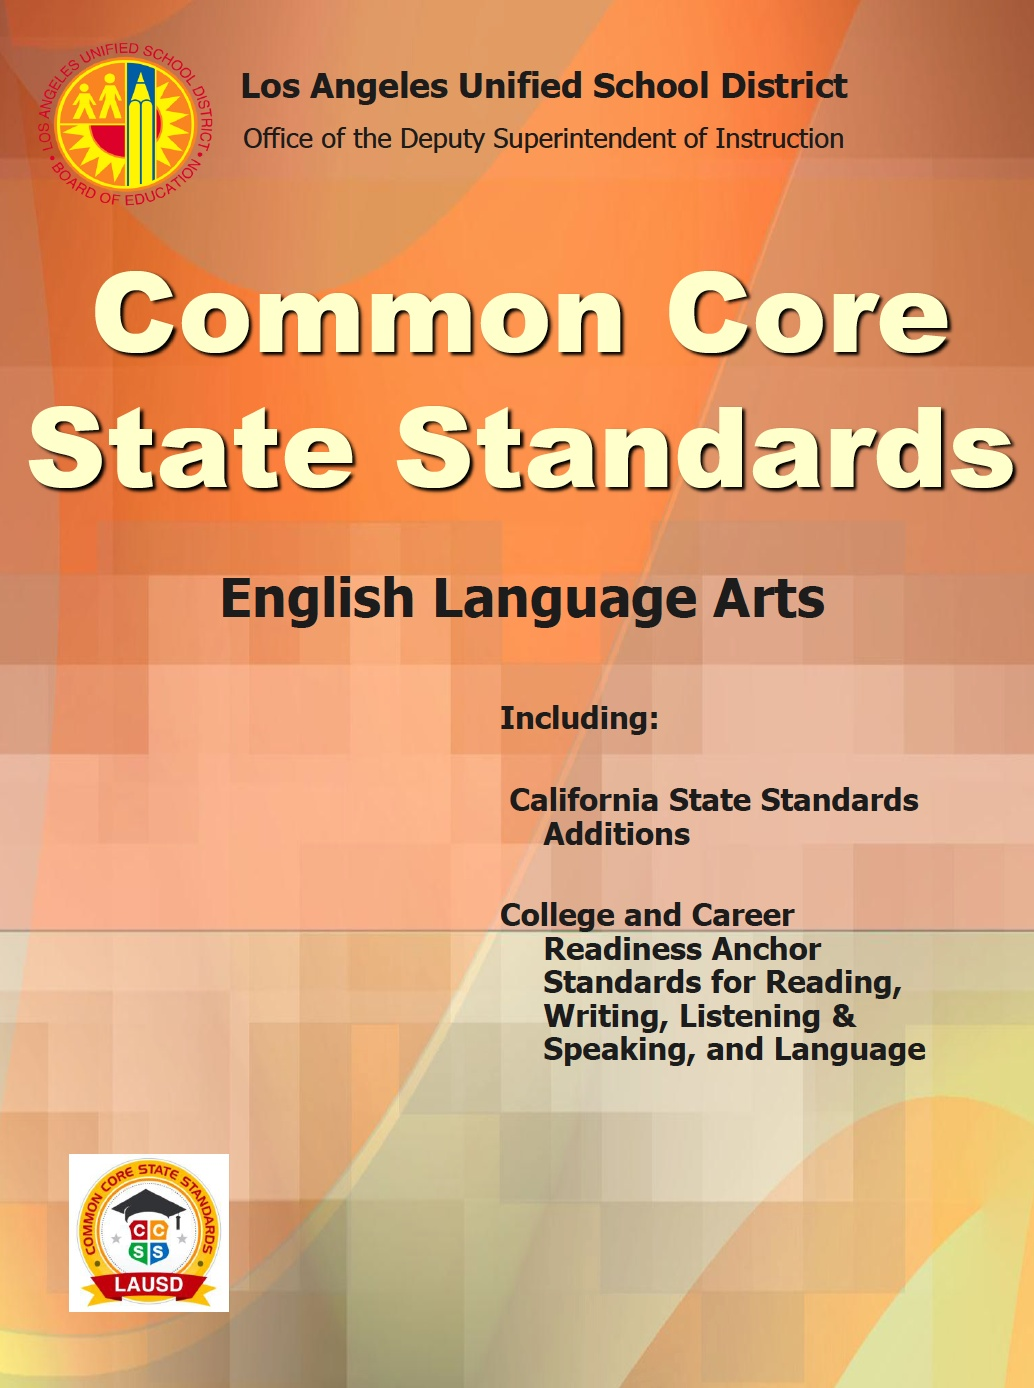 common core state standards for the los angeles unified school district